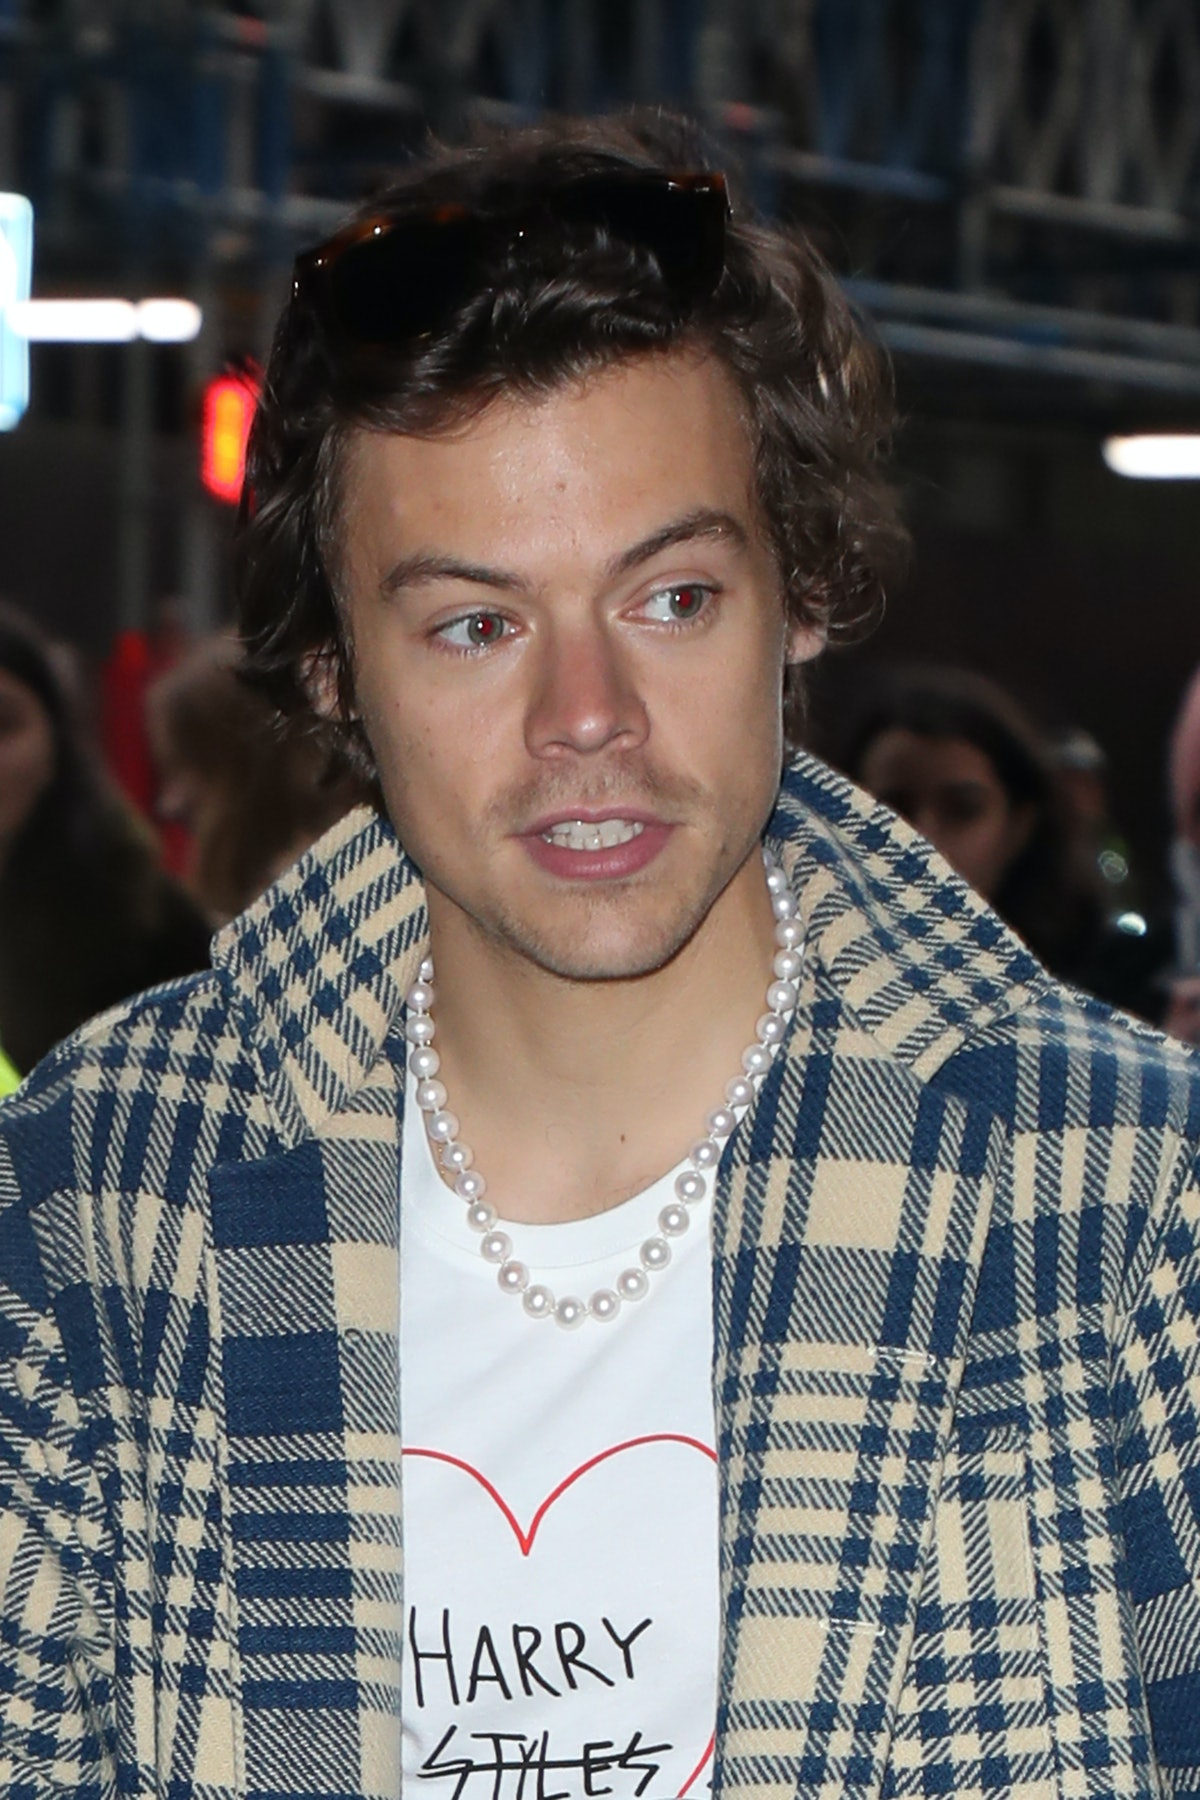 Harry Styles attends a taping at BBC Radio 1.